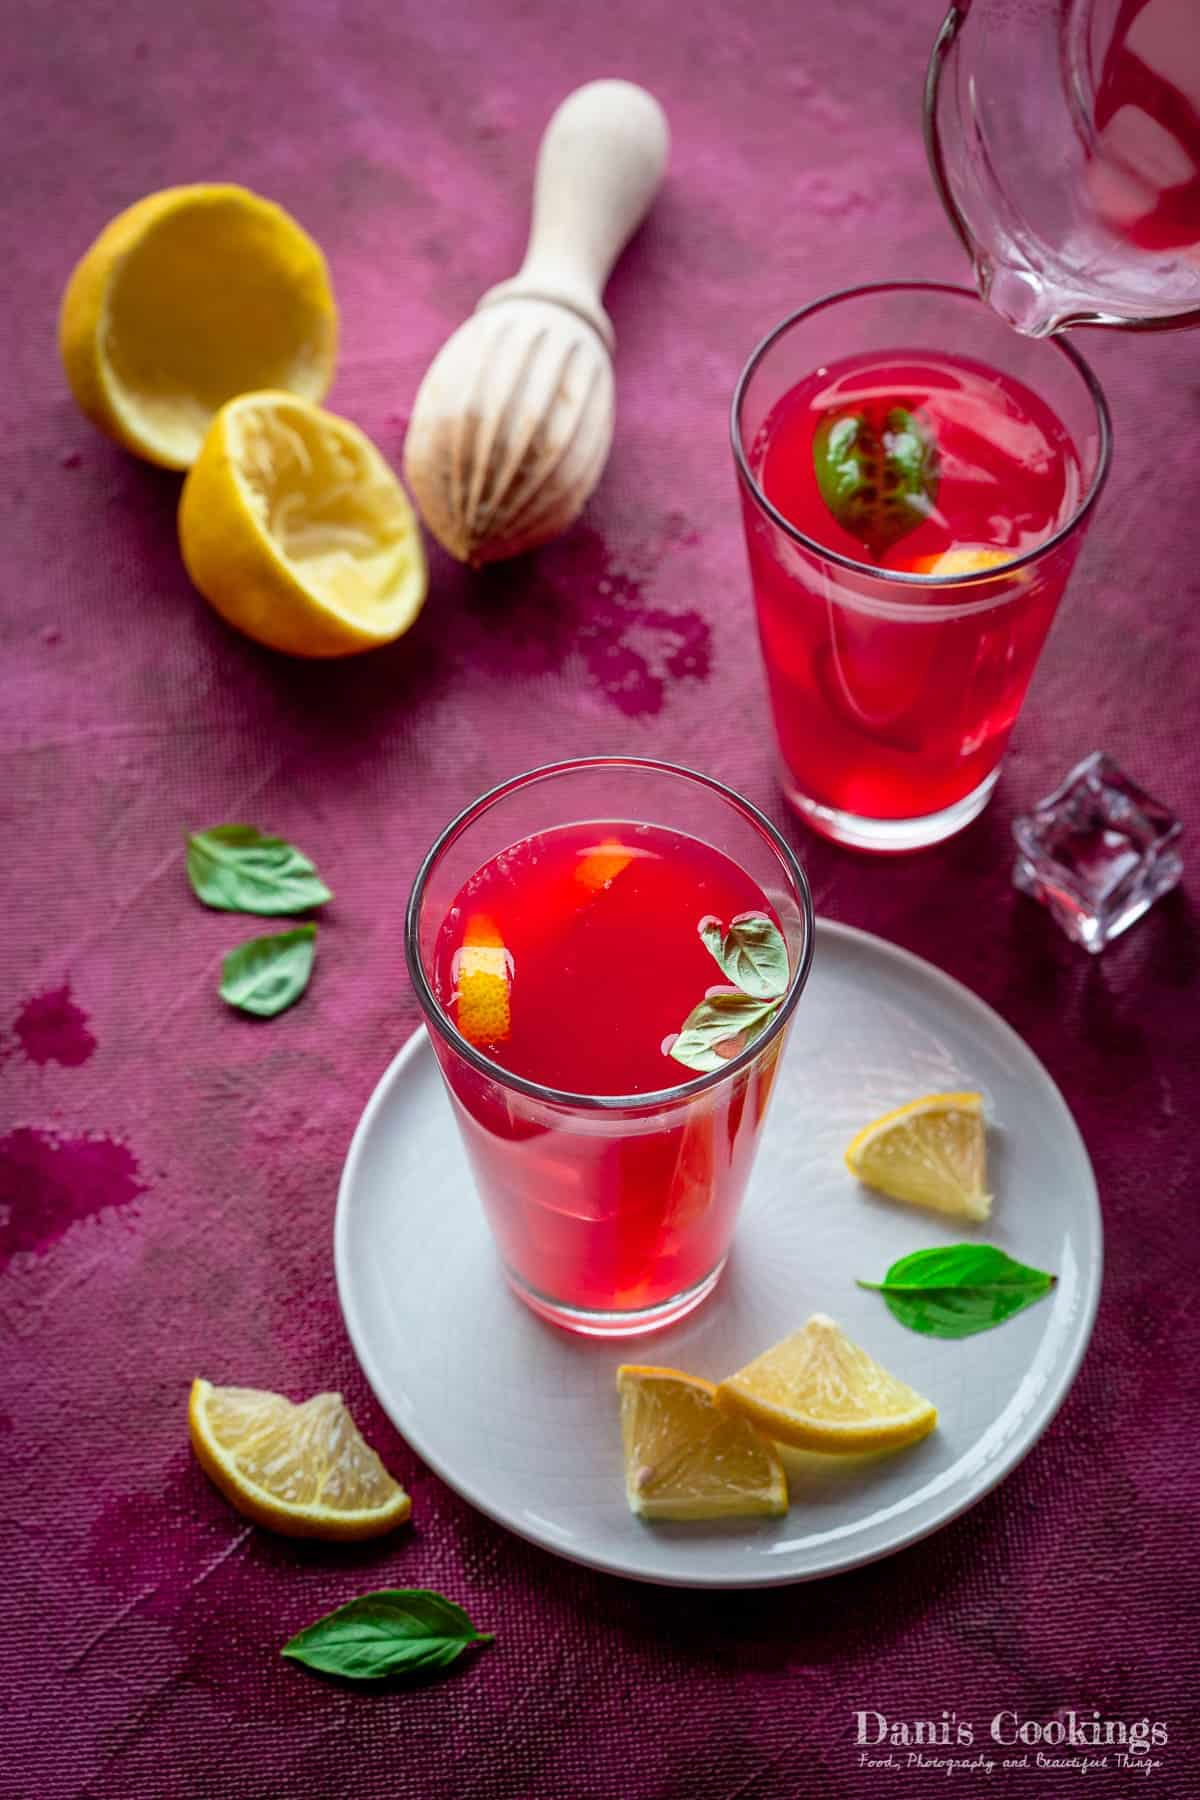 two glasses of pink lemonade with squeezed lemons and basil